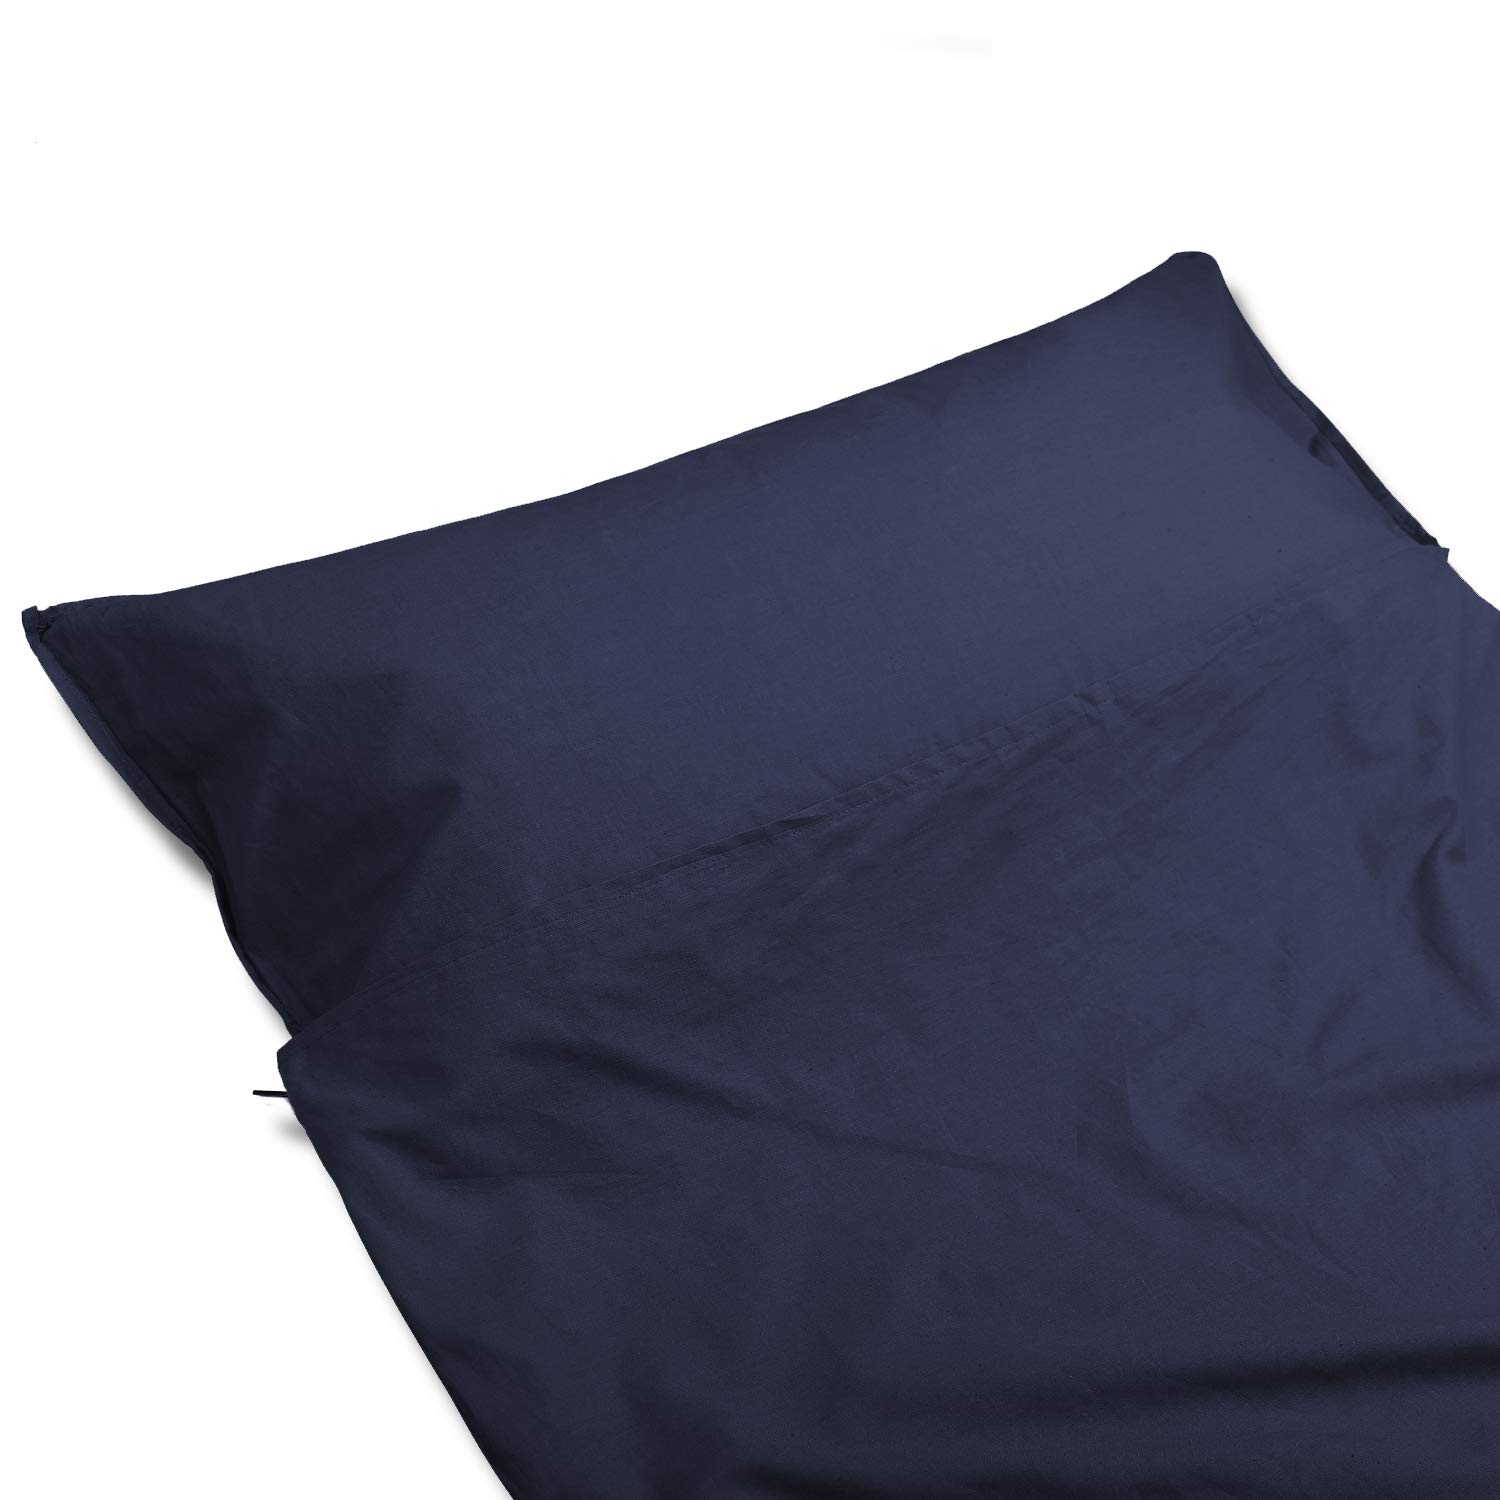 Hostels Camping /& Backpacking Unigear Sleeping Bag Liner and Camping Sheet Compact /& Lightweight Sleep Sack for Traveling